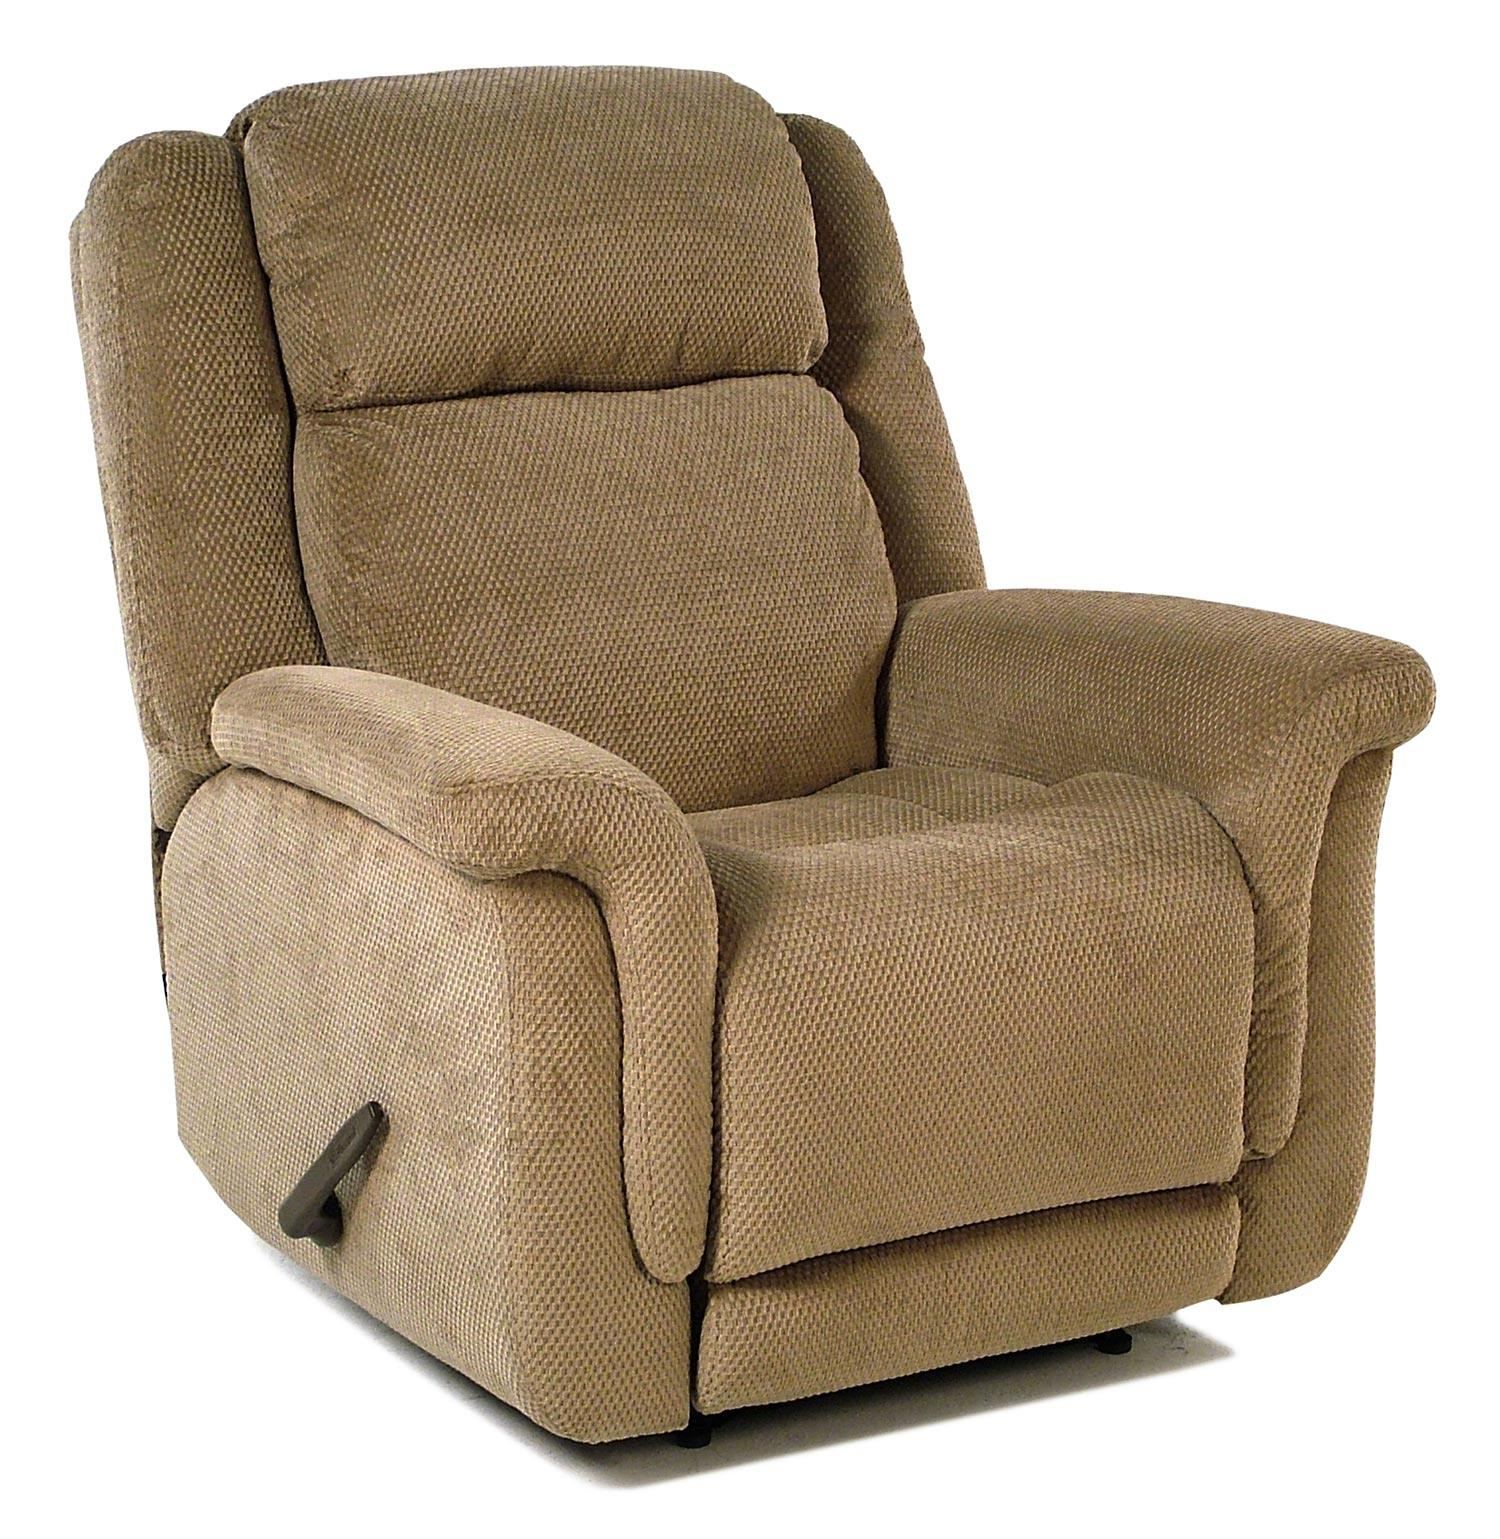 Flexsteel Accents Wall Recliner w/ Pillow Arms - Item Number: 2814-50-646-80